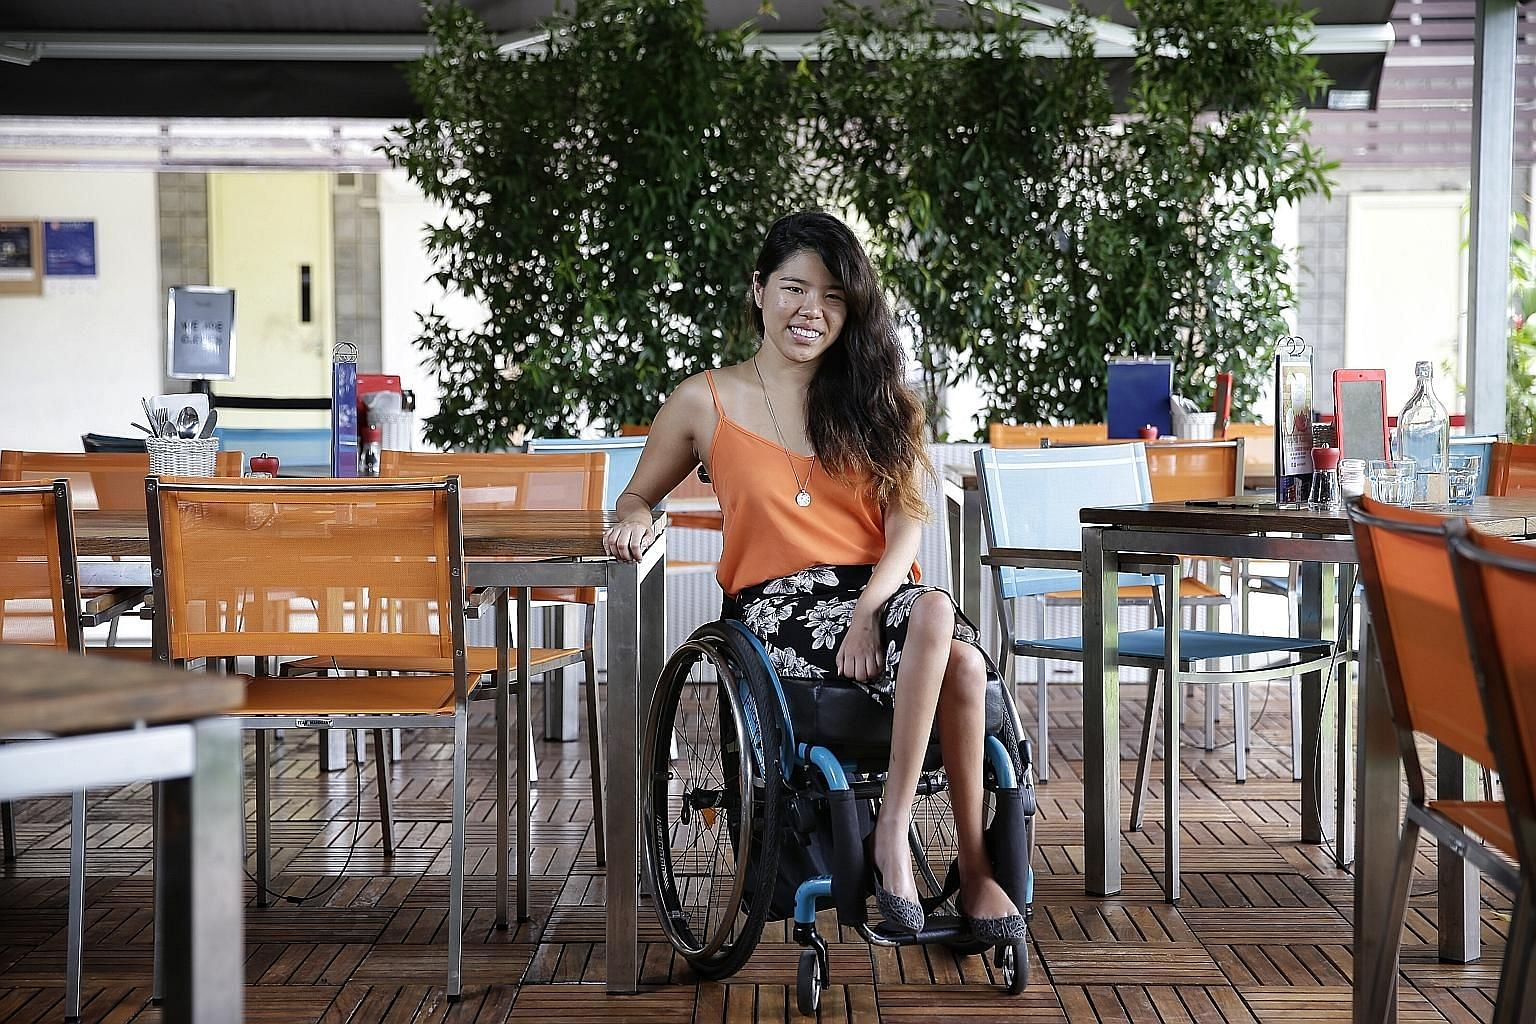 Swimmer Yip Pin Xiu, seen here at Cafe Melba, travels independently, taking taxis or Uber or Grab. She notes that attitudes towards the disabled here have improved in the last few years.